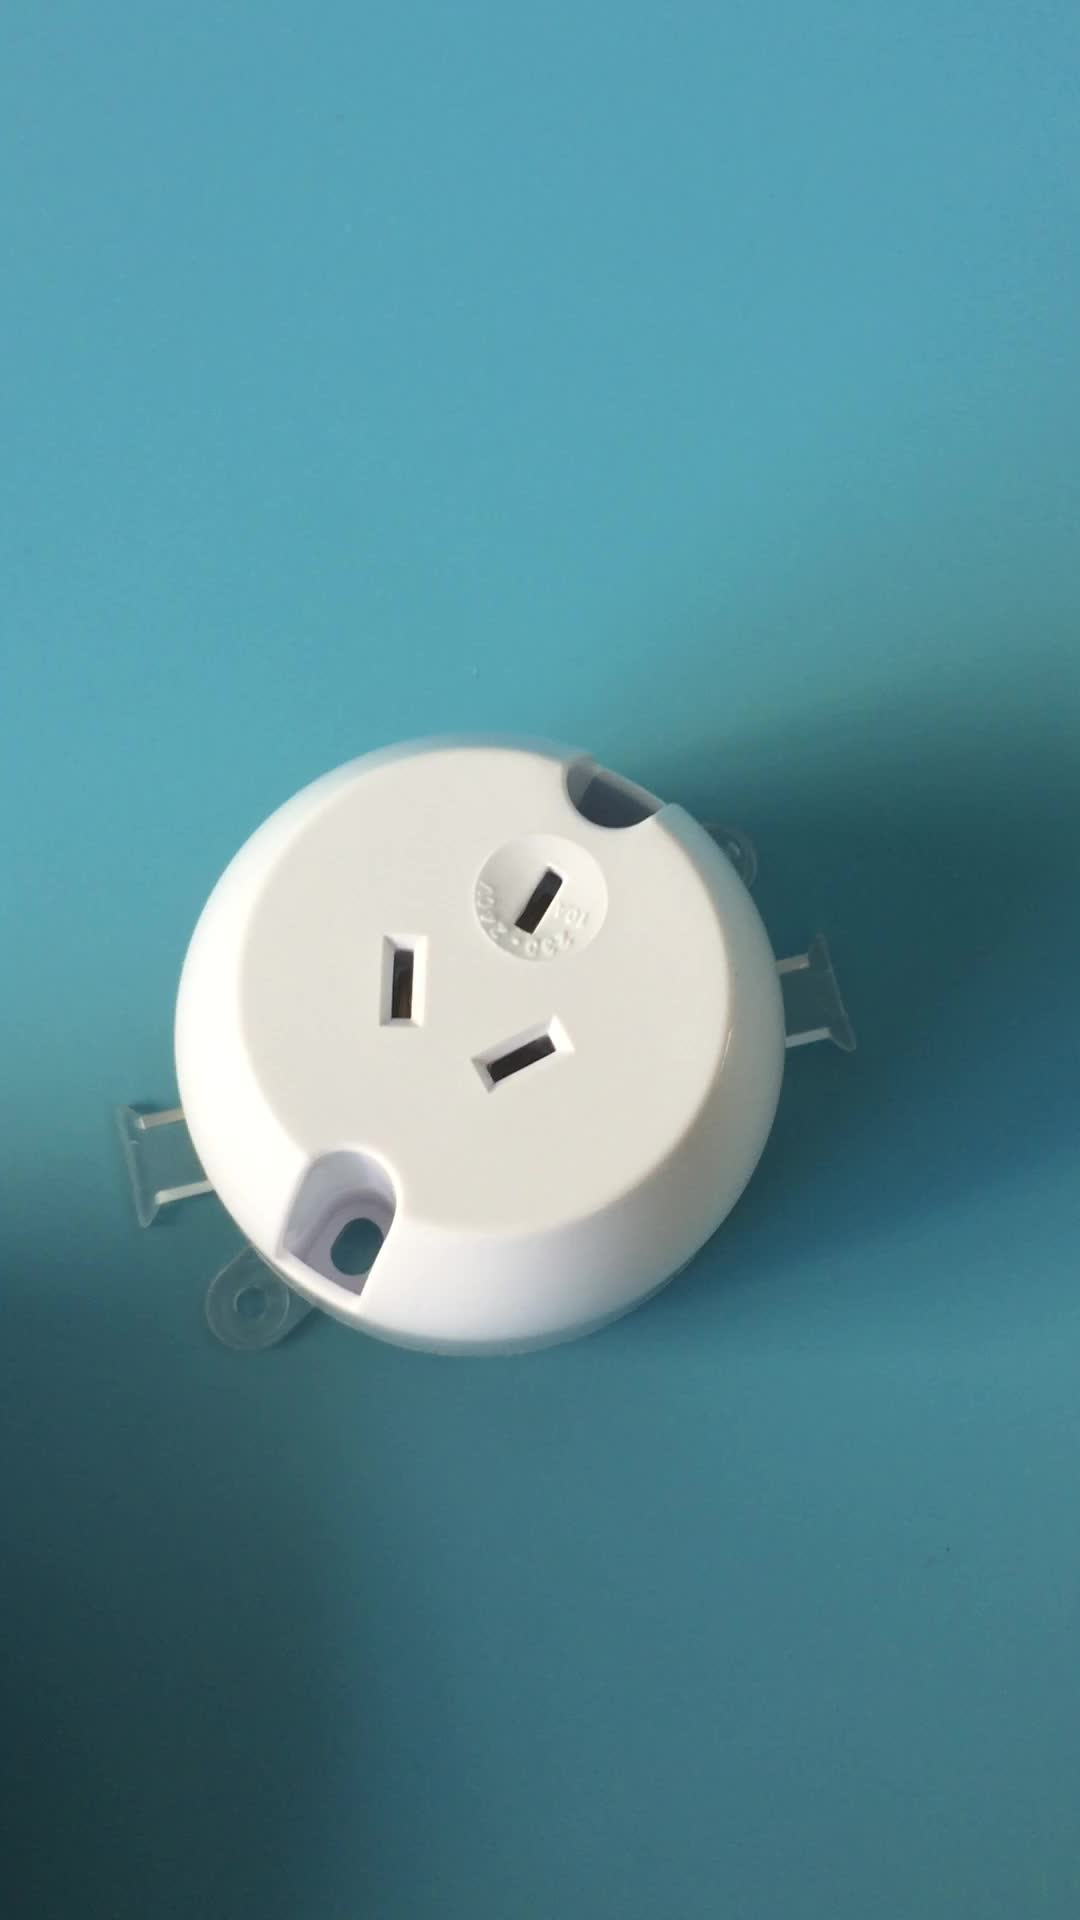 nadway universal socket outlet